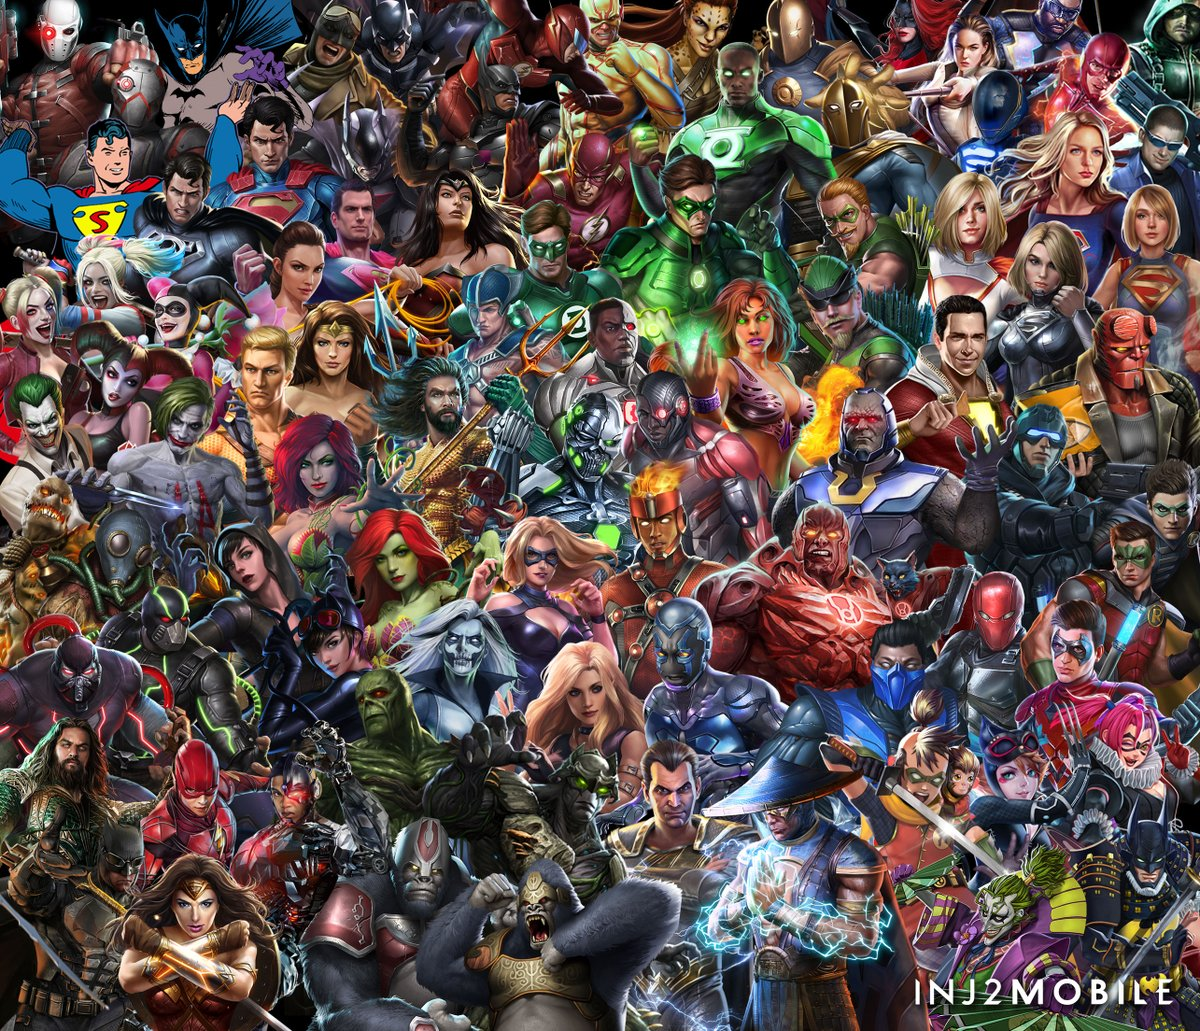 Heroes   Injustice 2 Mobile Wiki   FANDOM powered by Wikia